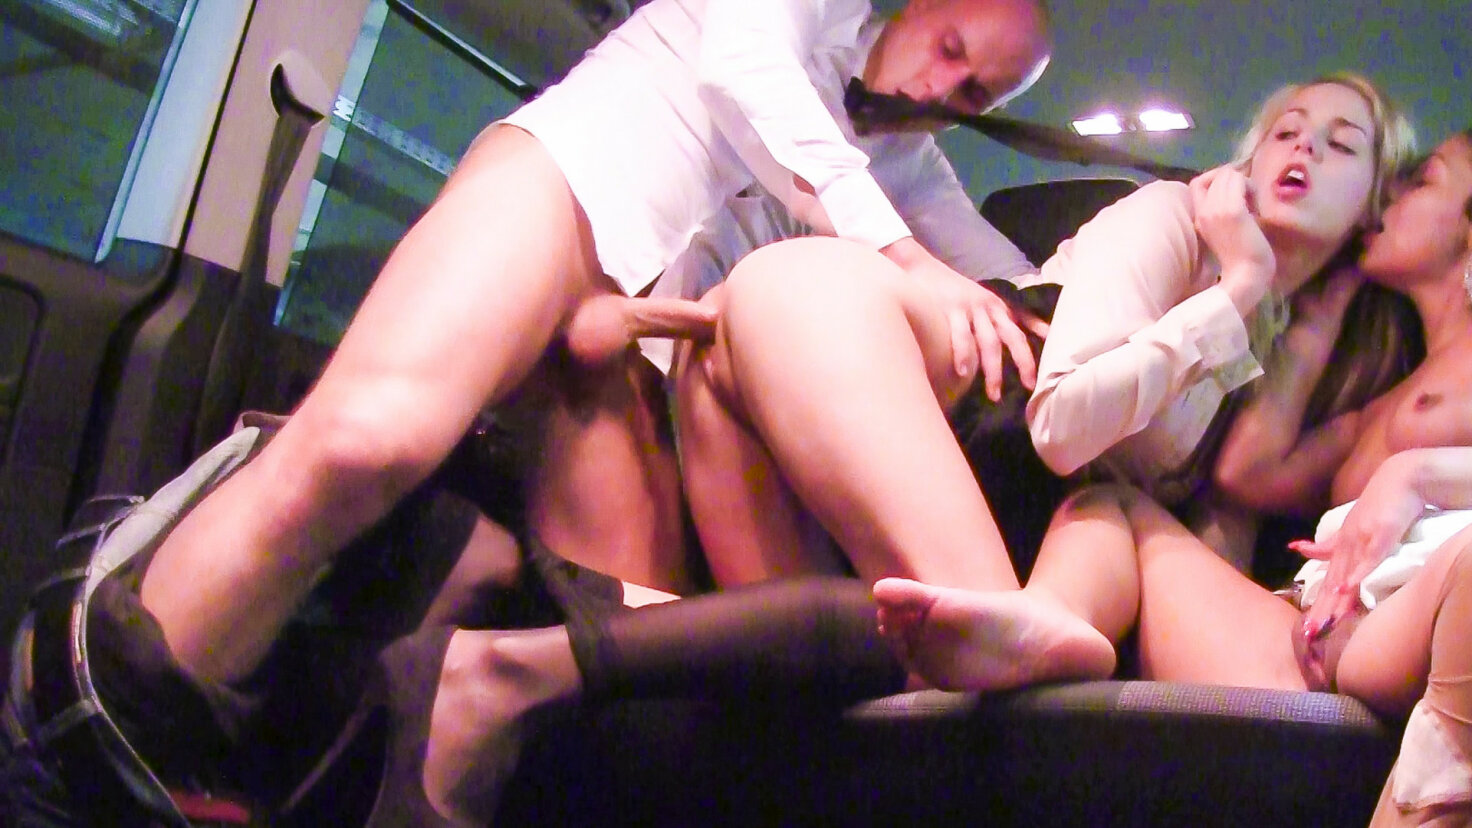 Hardcore threesome in the car with horny Czech babes